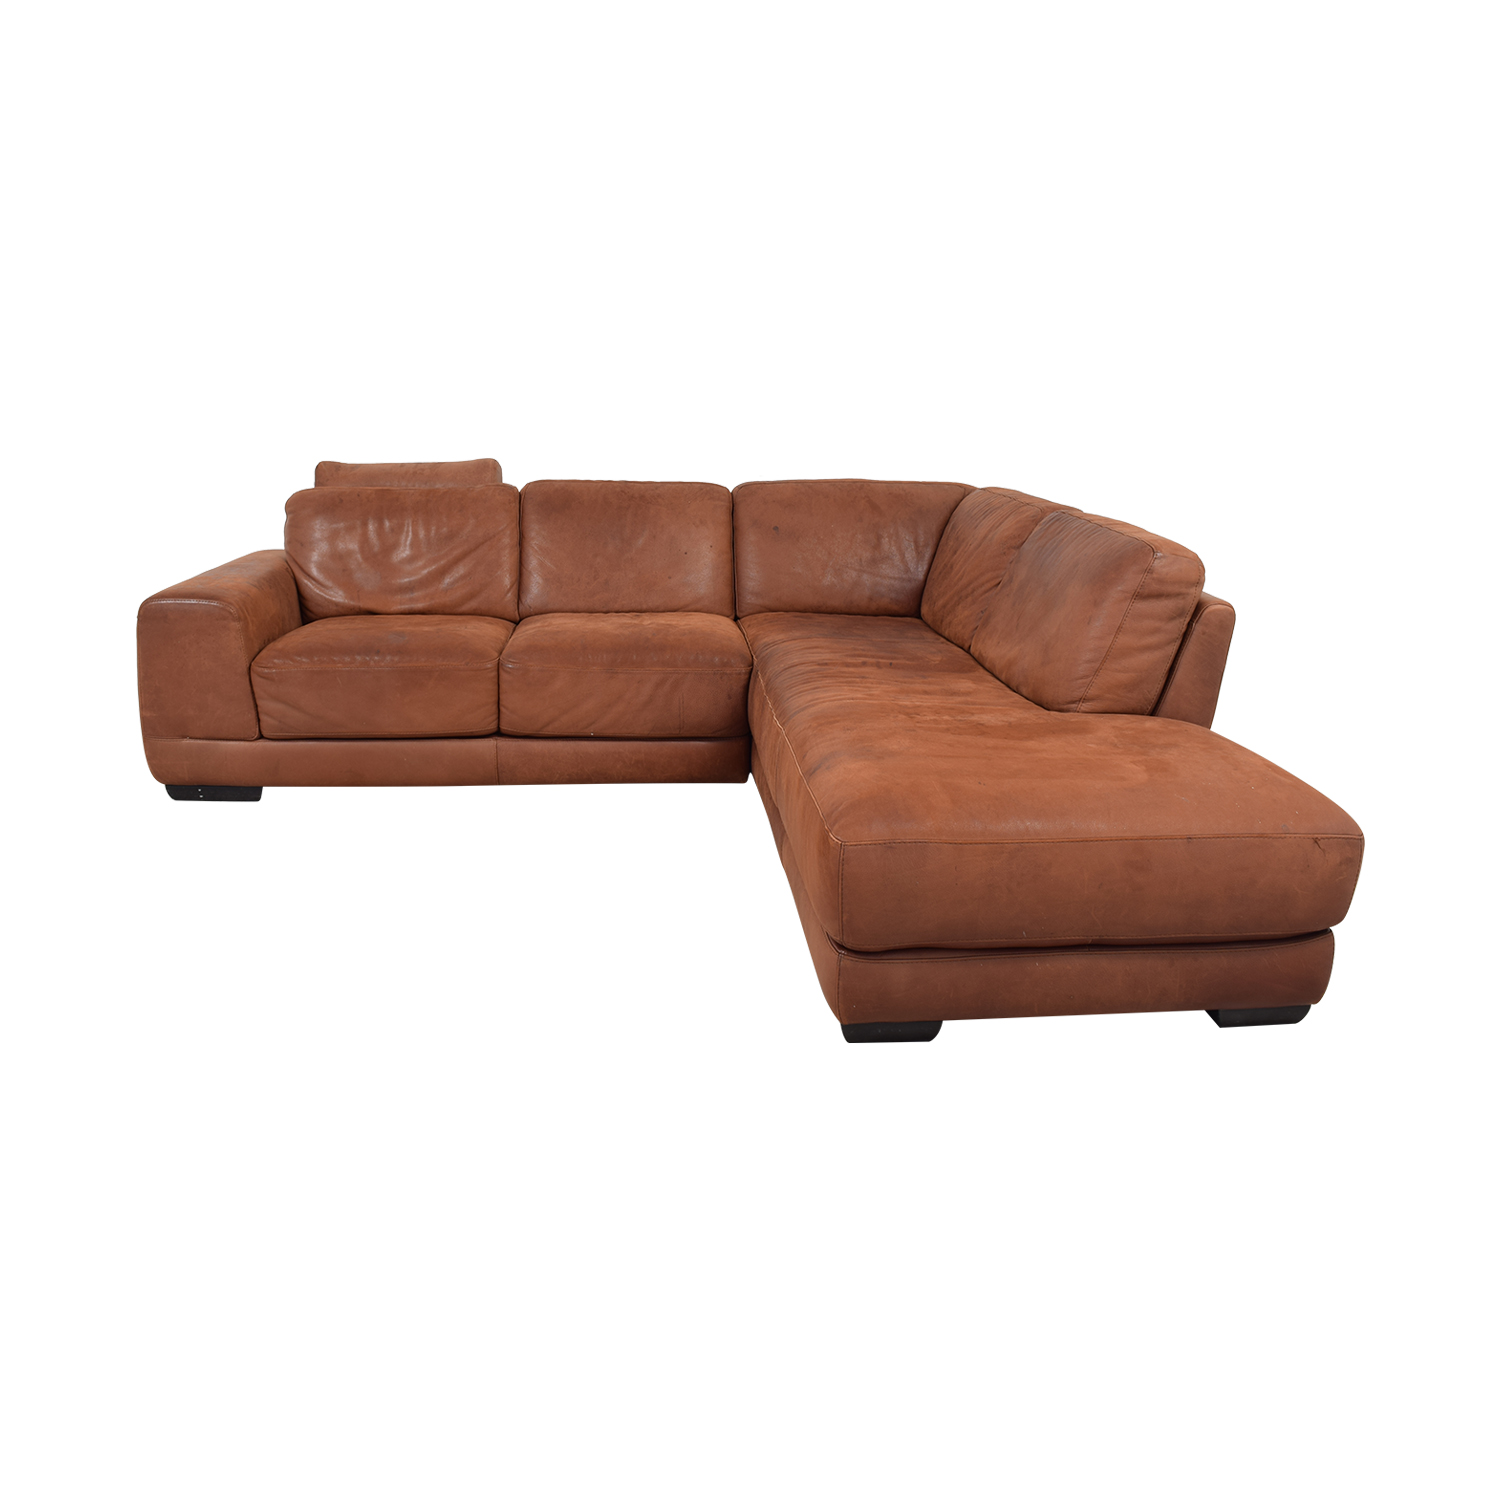 Maurice Villency Maurice Villency Marina Brown Sectional